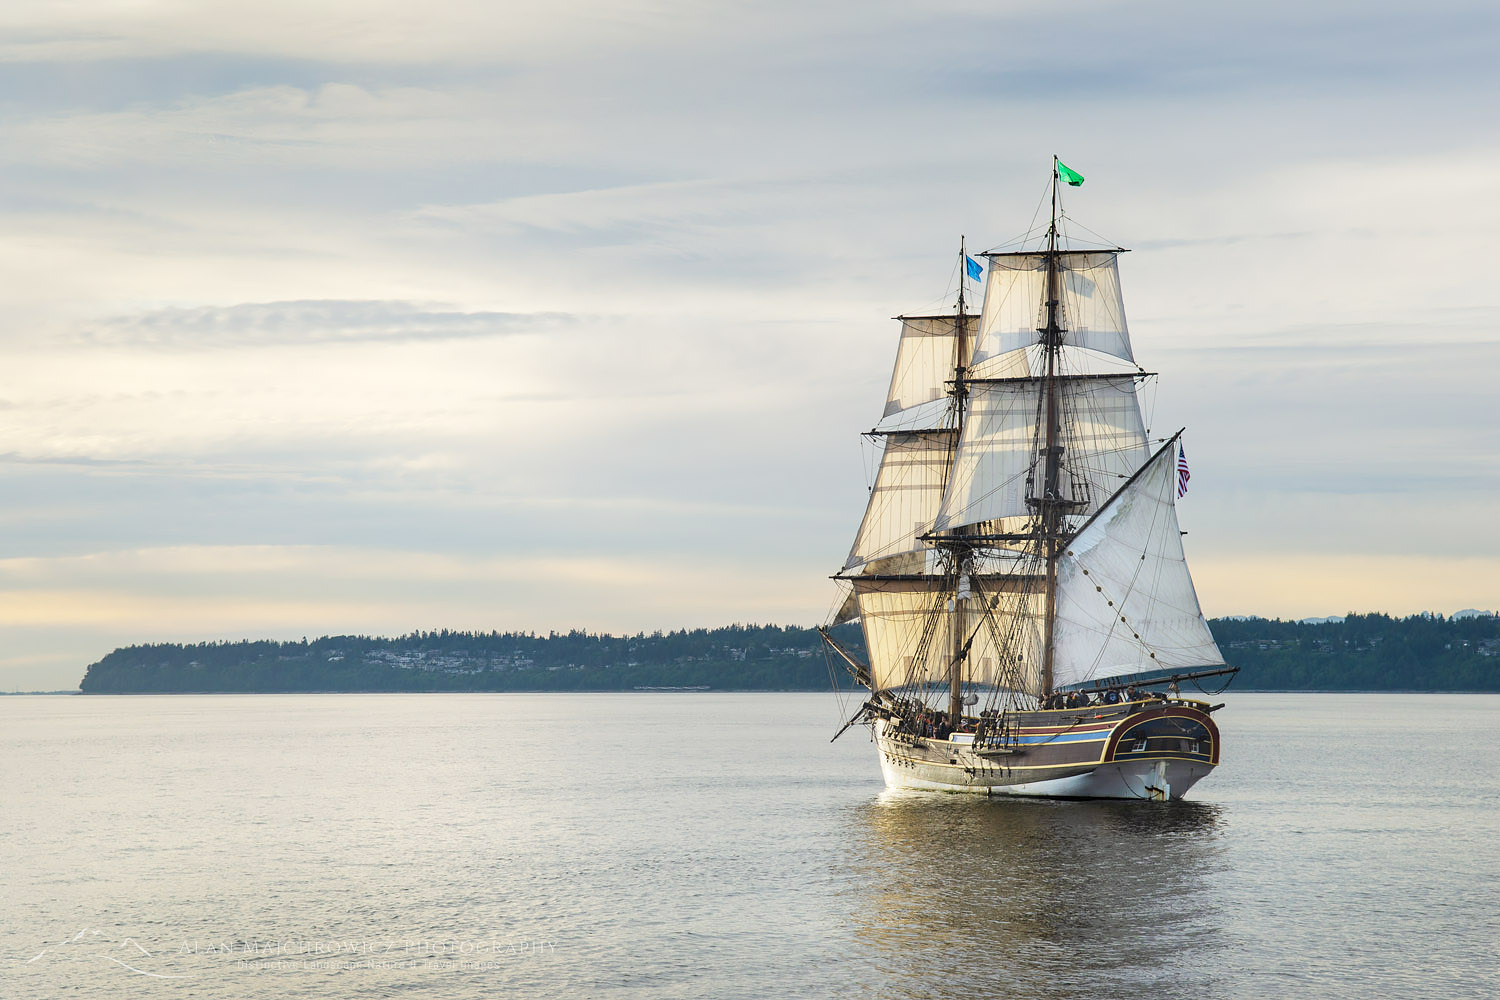 Lady Washington at sail in Semiahmoo Bay, Washington